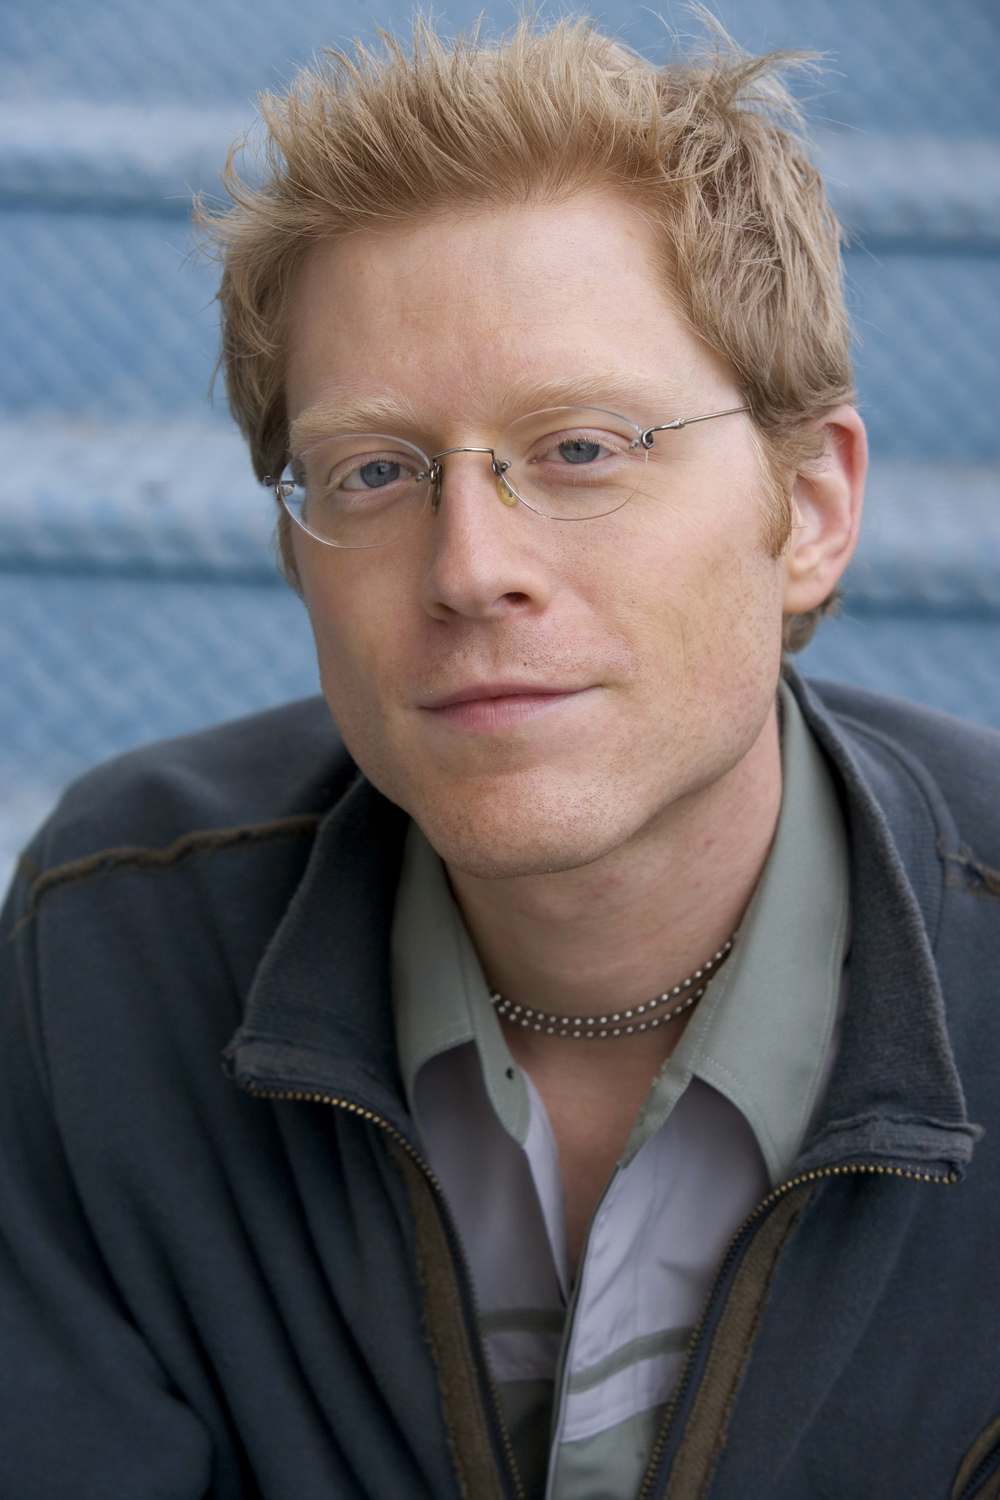 Anthony-Rapp-Headshot-Final.jpg